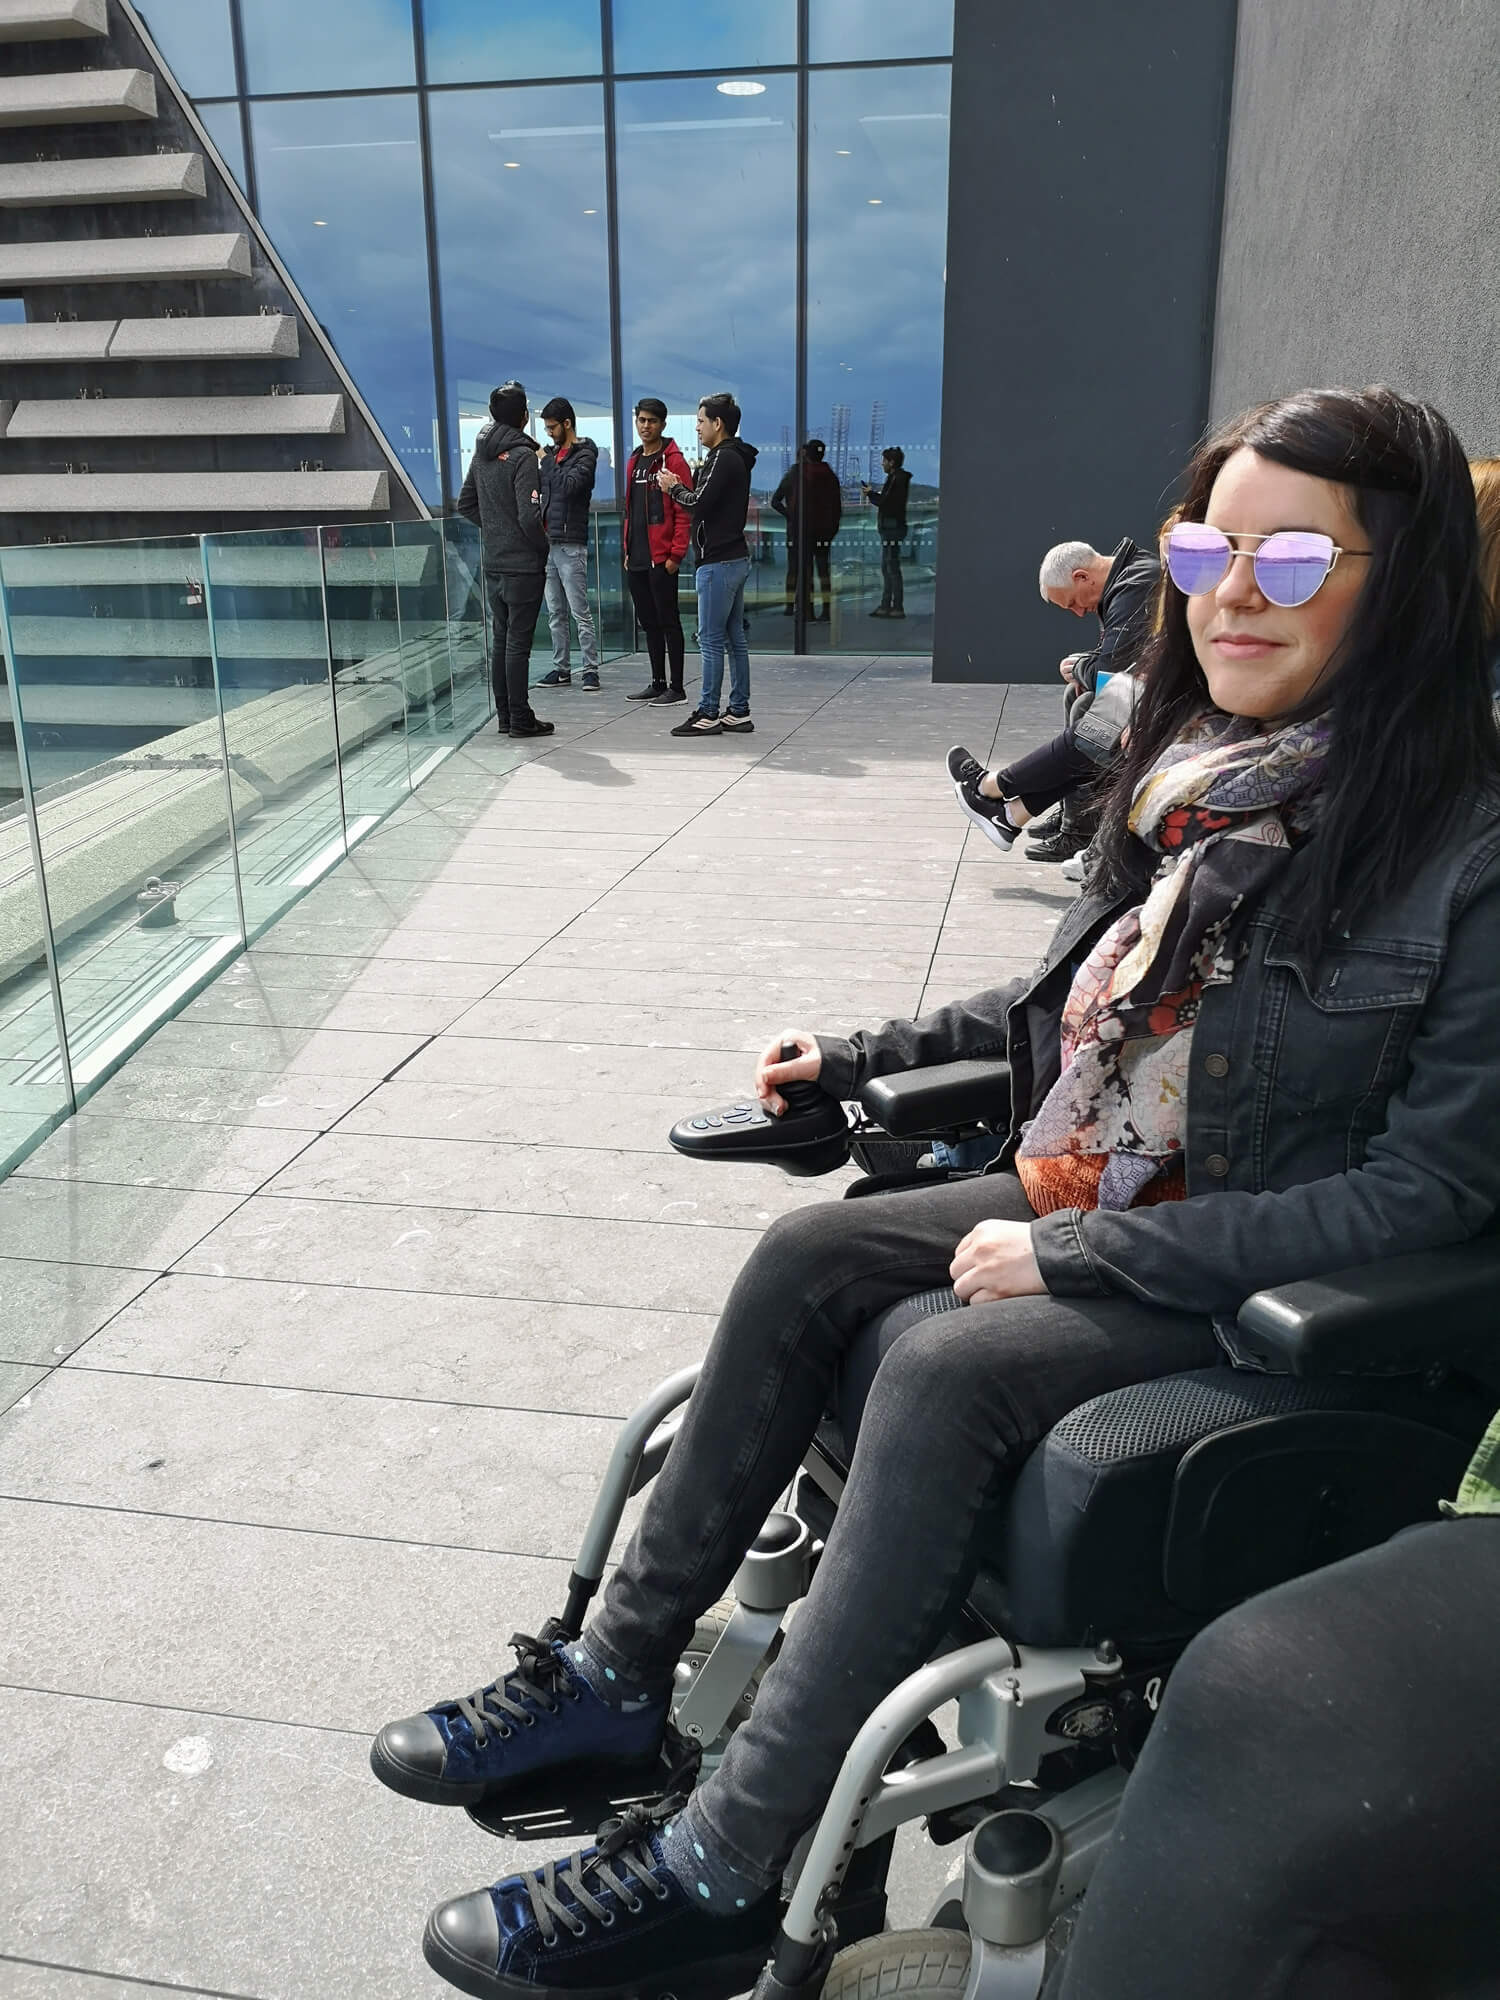 Emma sitting on the viewing terrace. She is wearing sunglasses, black denim jacket and black skinny jeans.